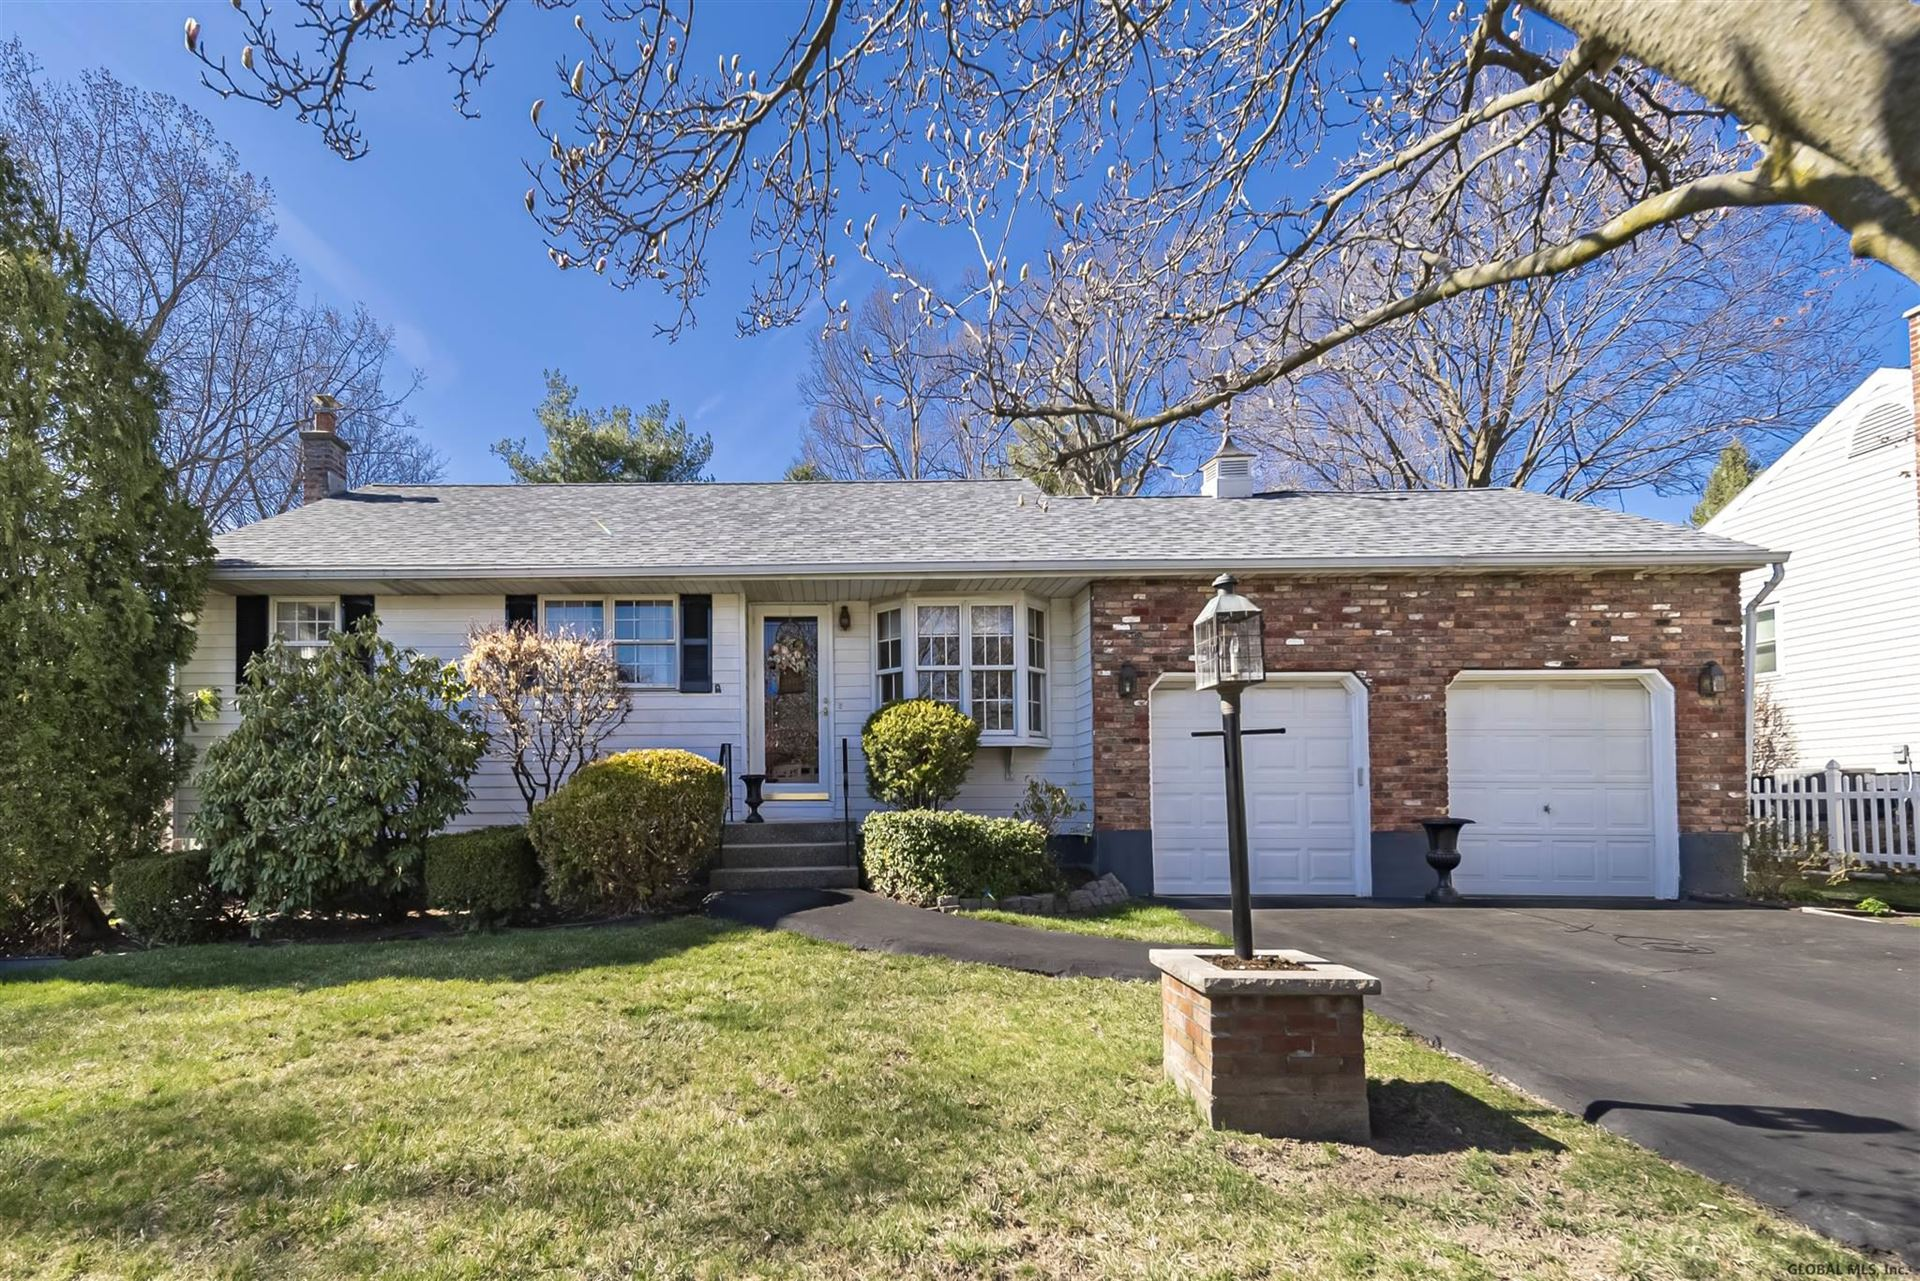 23 CHATEAU CT, Colonie, NY 12211 - #: 202115598